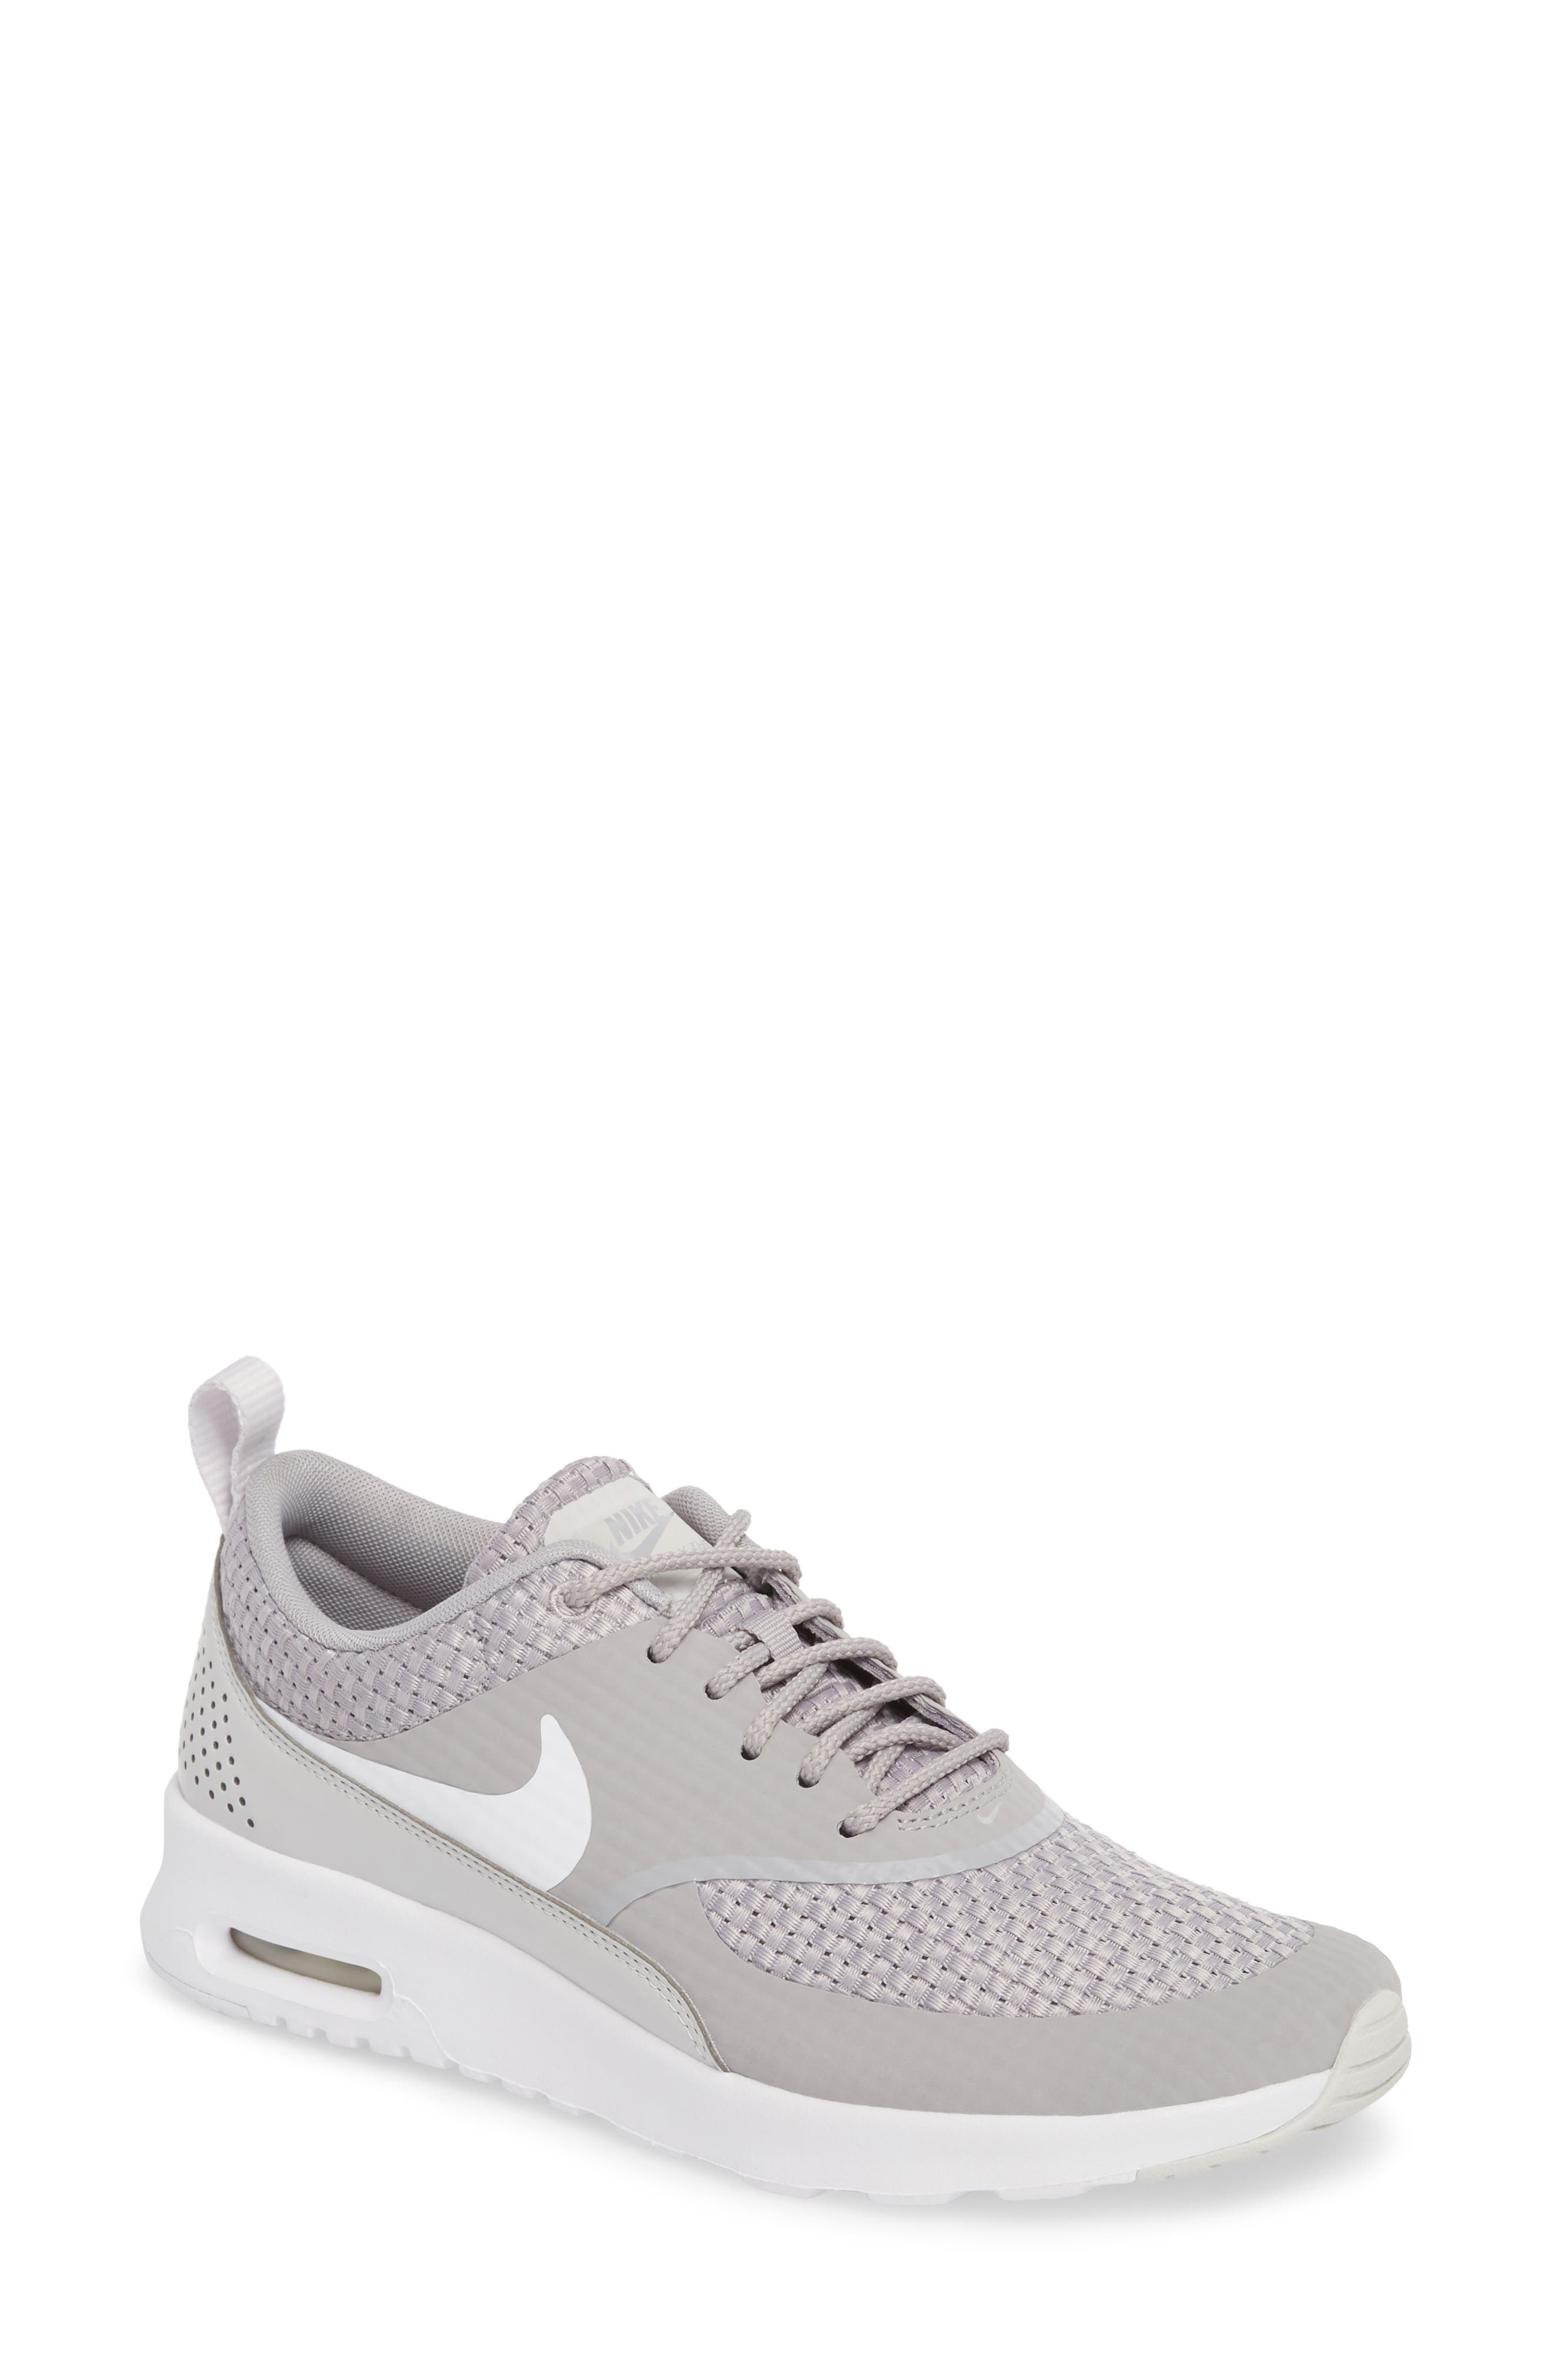 Air Max Thea Sneaker,                         Main,                         color, ATMOSPHERE GREY/ WHITE